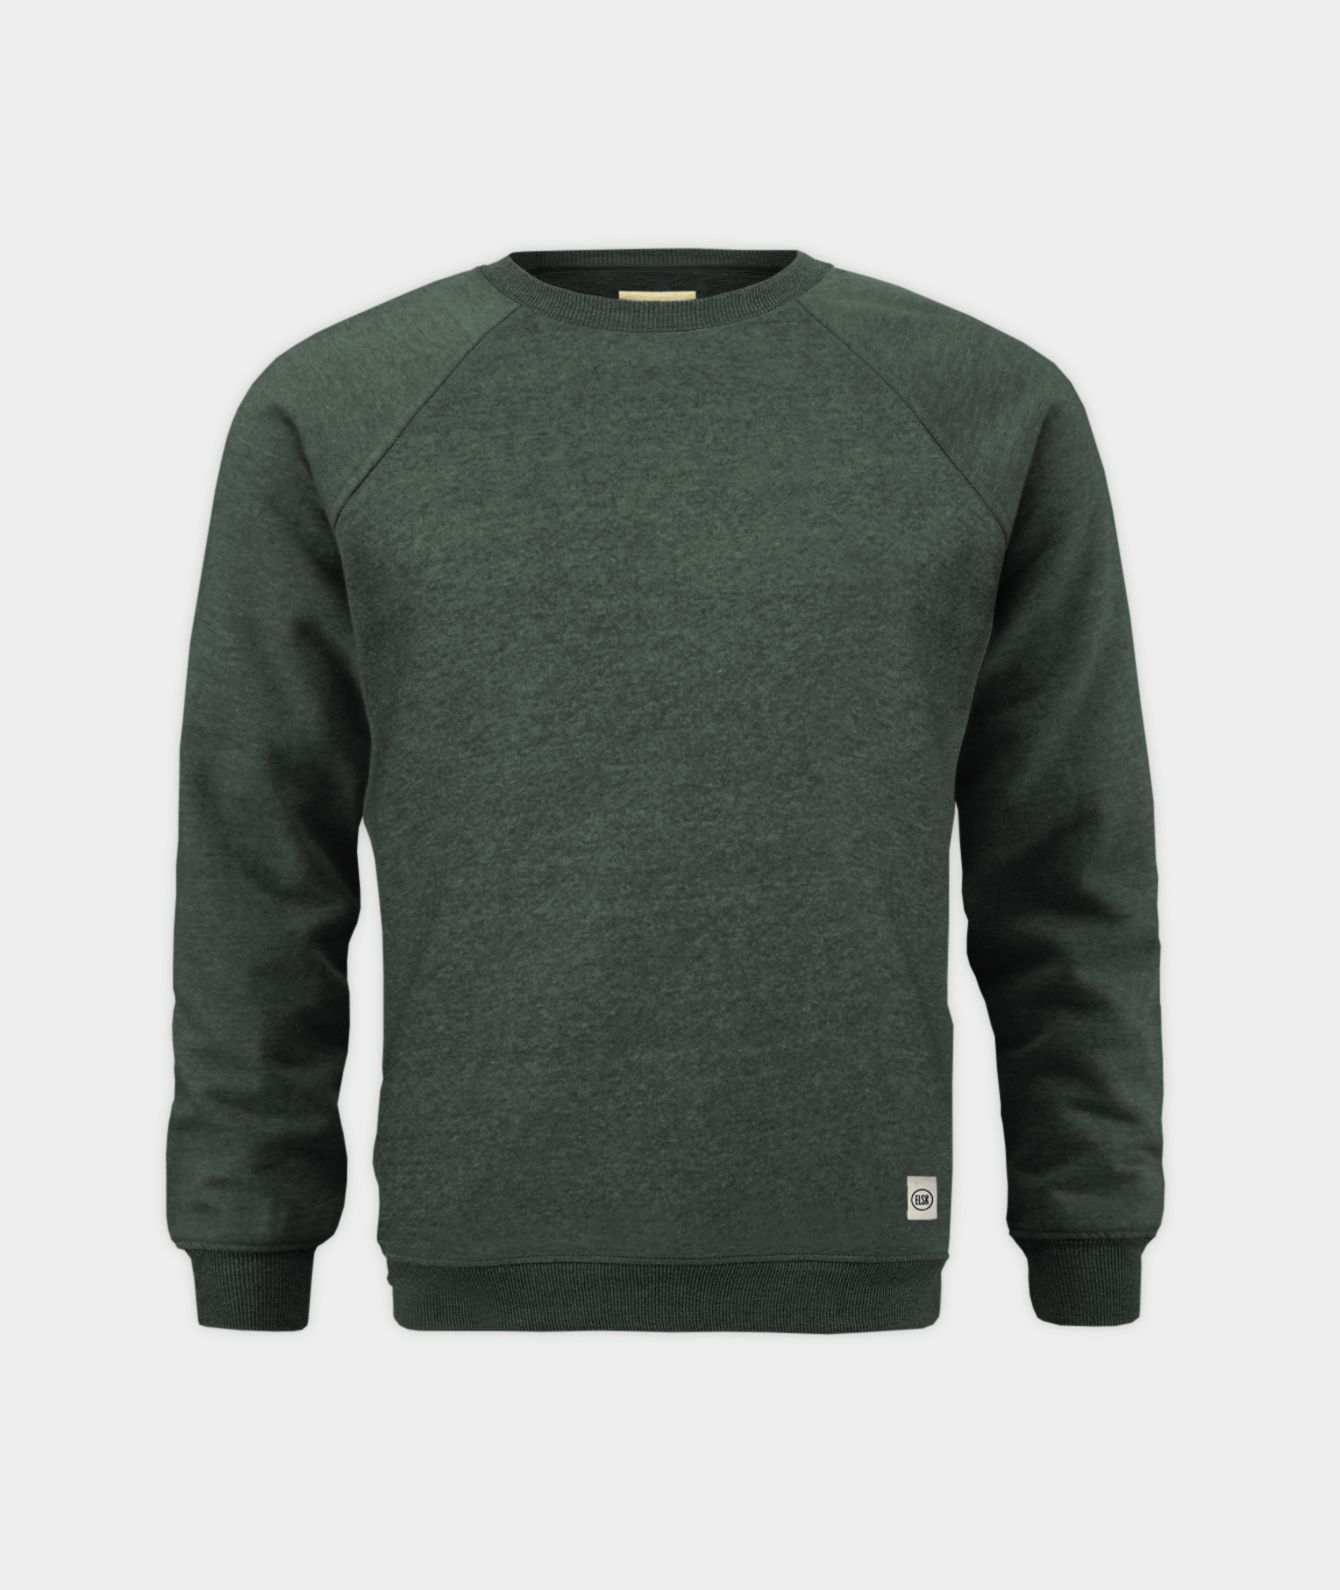 Image of   Sweatshirt, grøn